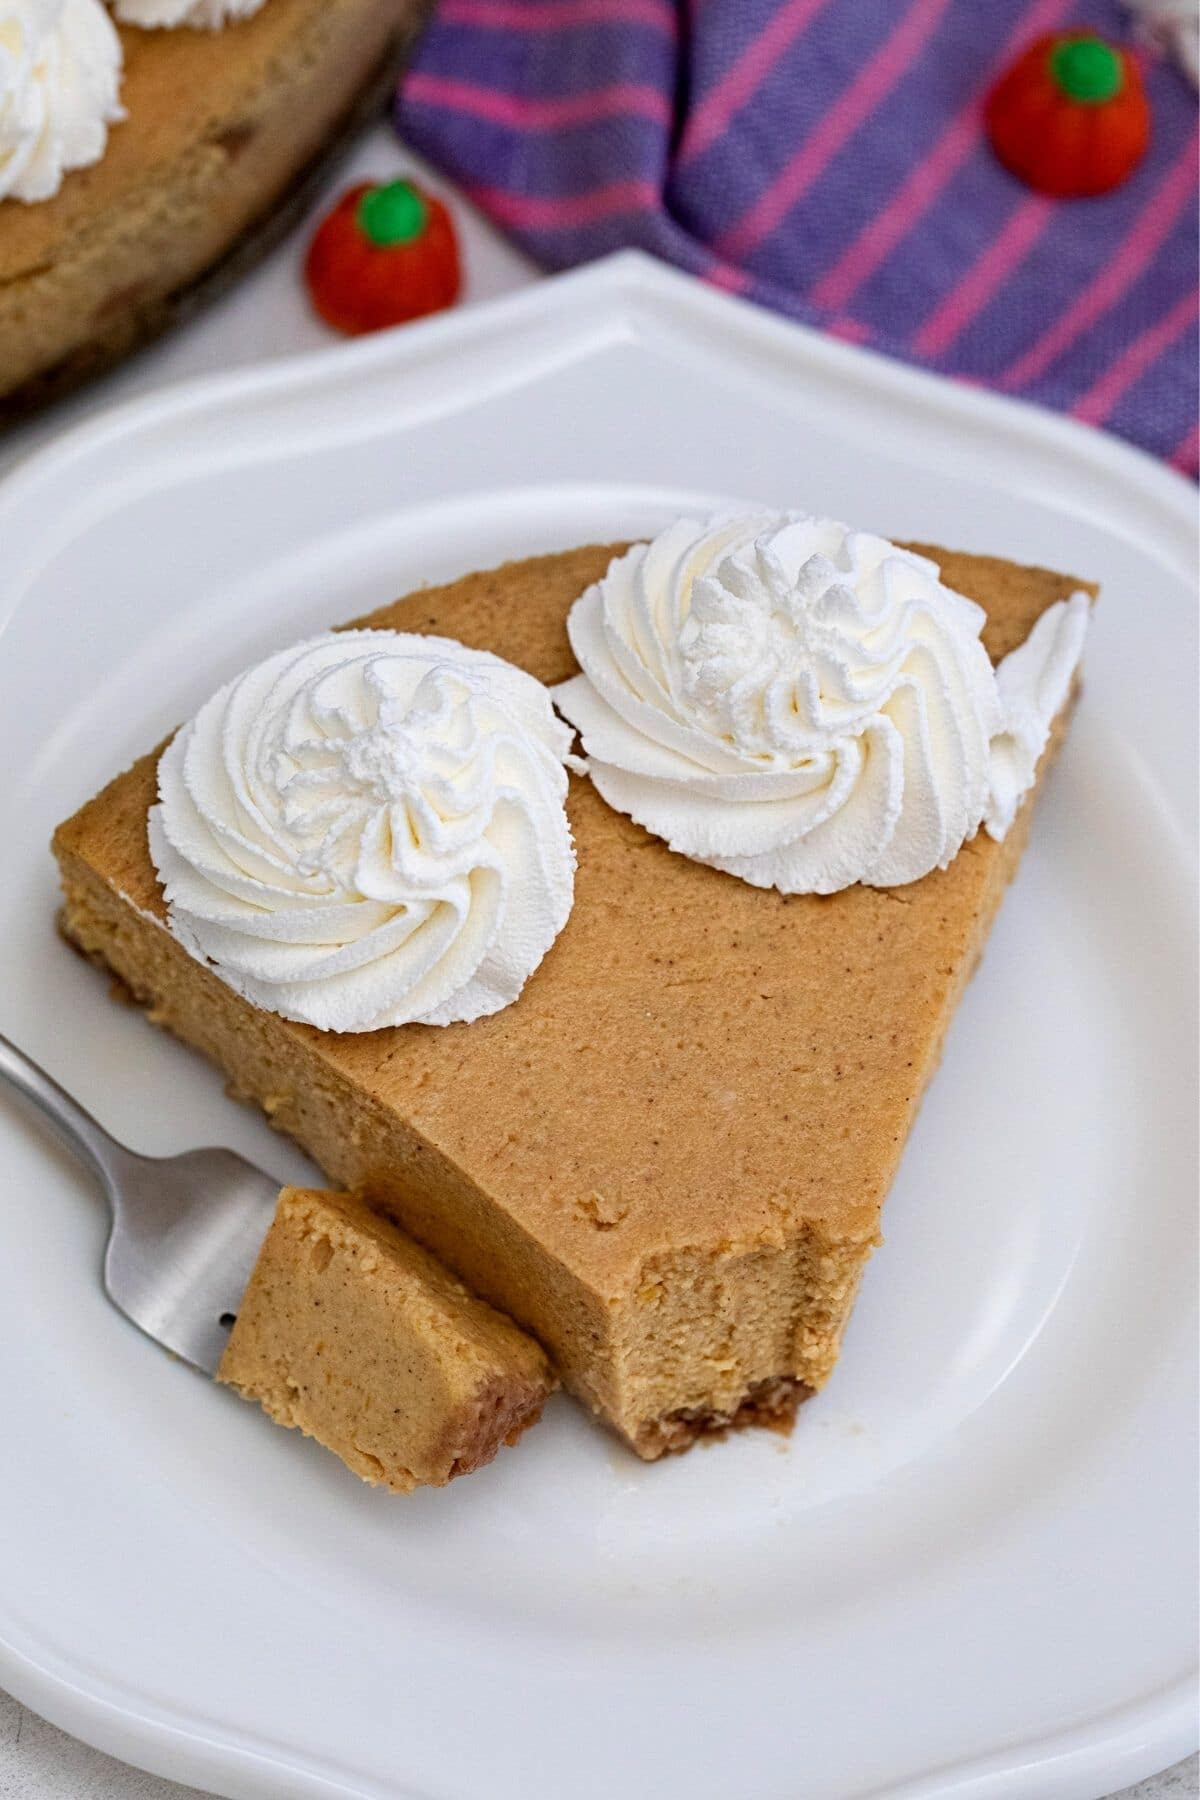 Bite of pumpkin cheesecake on fork by sliced cheesecake on white plate